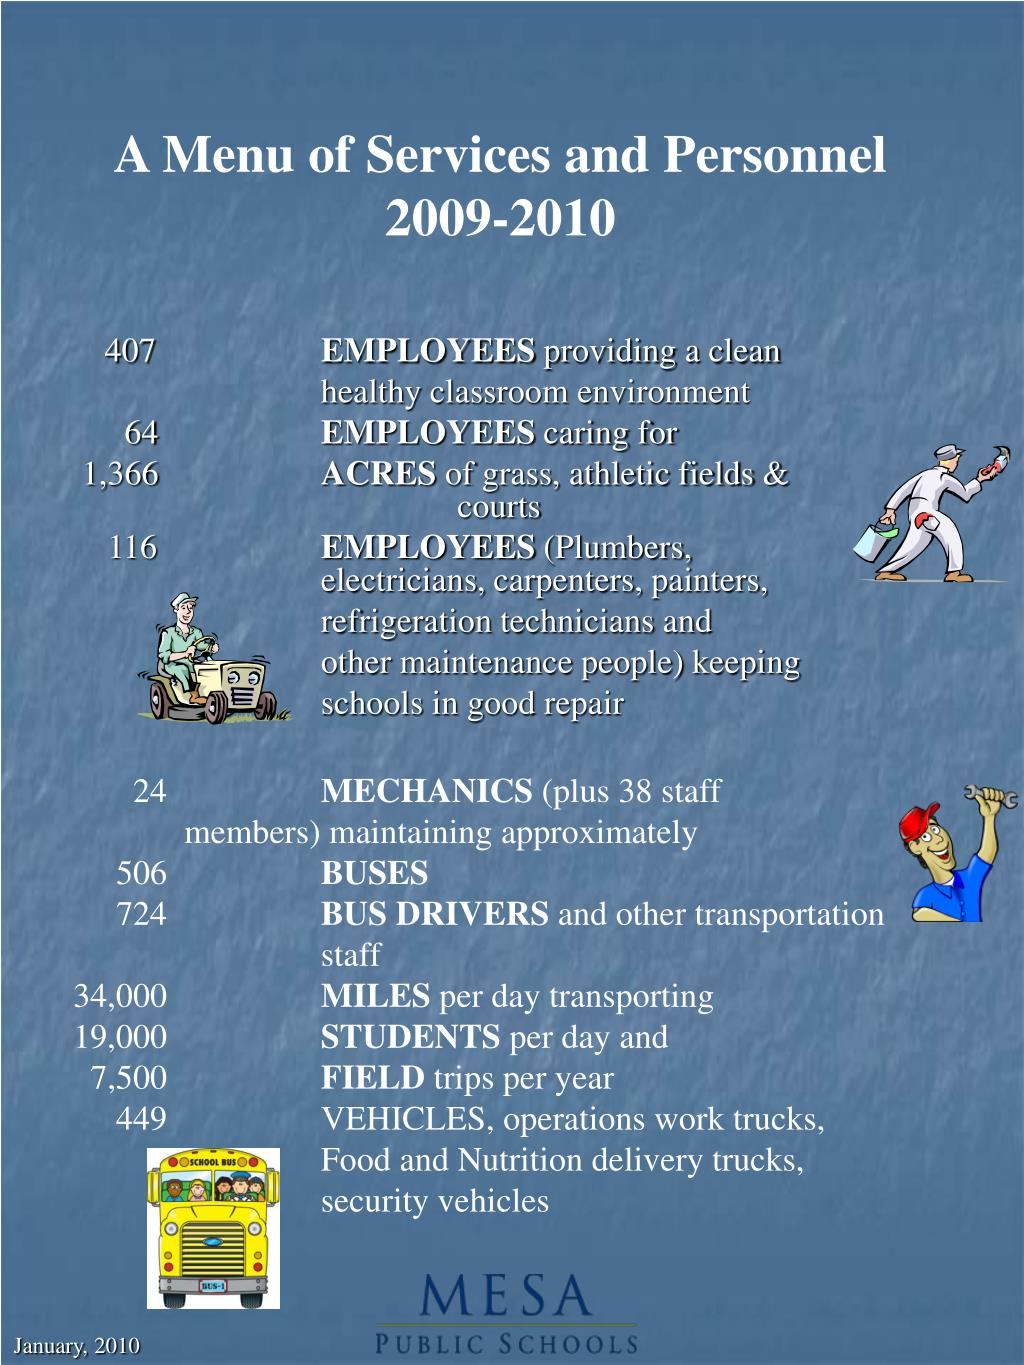 A Menu of Services and Personnel